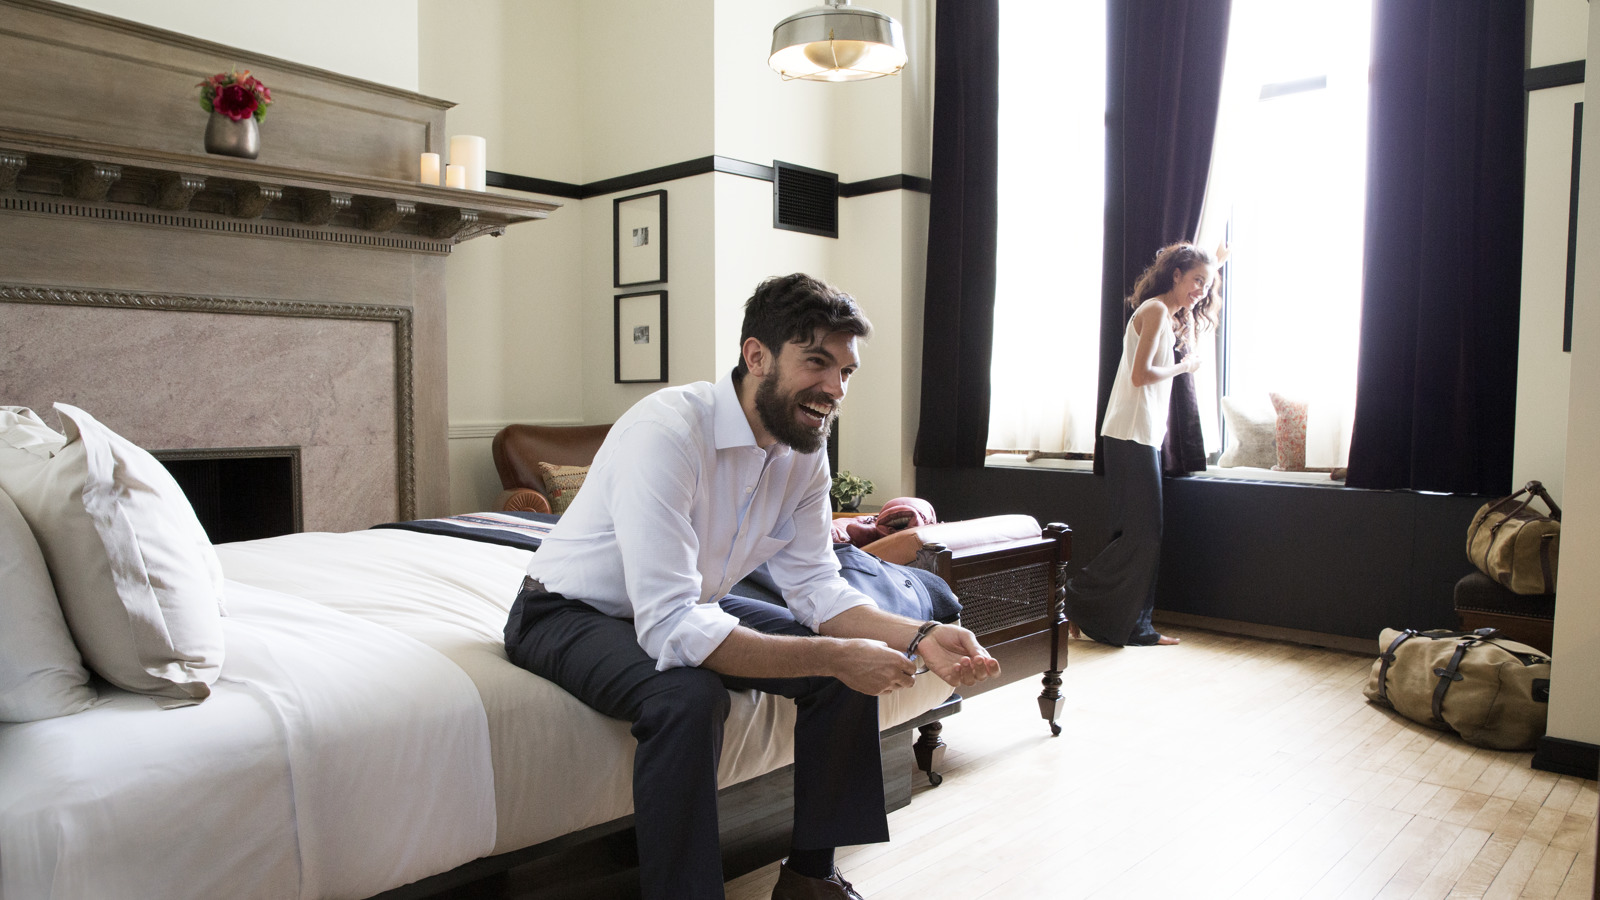 Downtown Chicago IL Hotel Rooms & Suites | Chicago Athletic ...